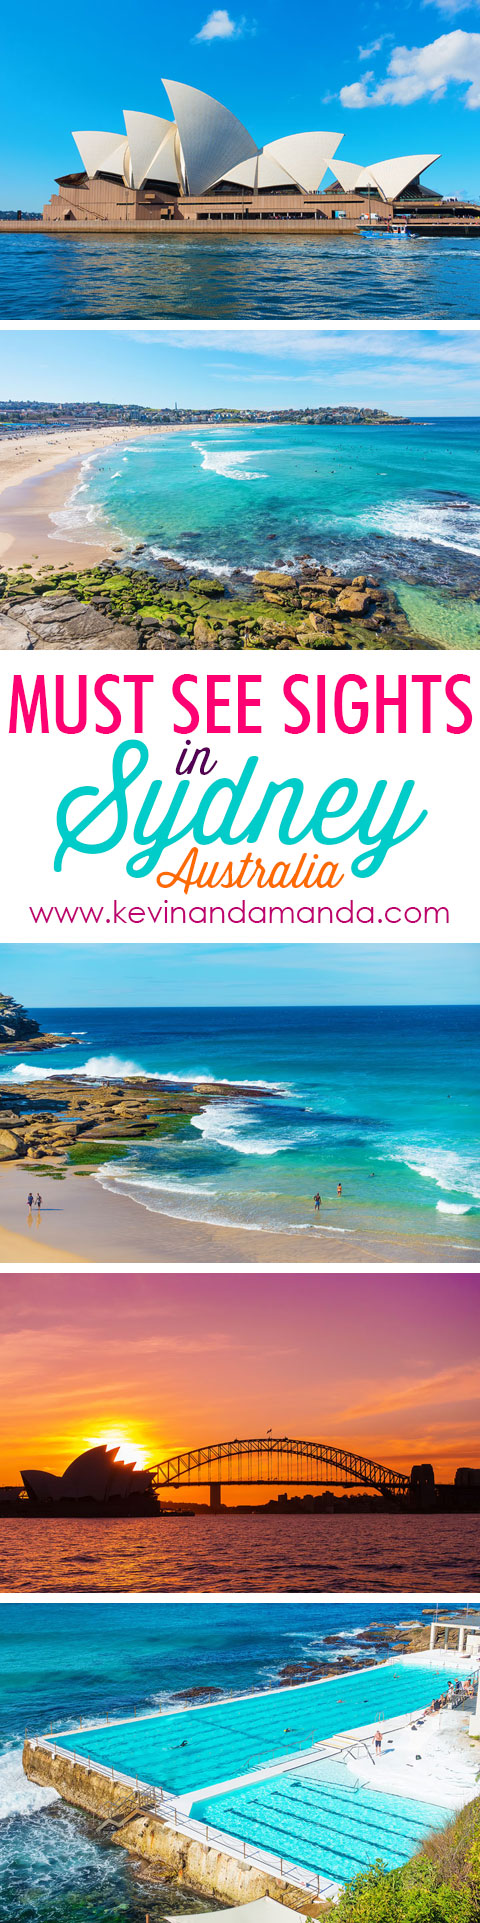 Add these stunning Sydney, Australia sights to your bucket list ASAP!